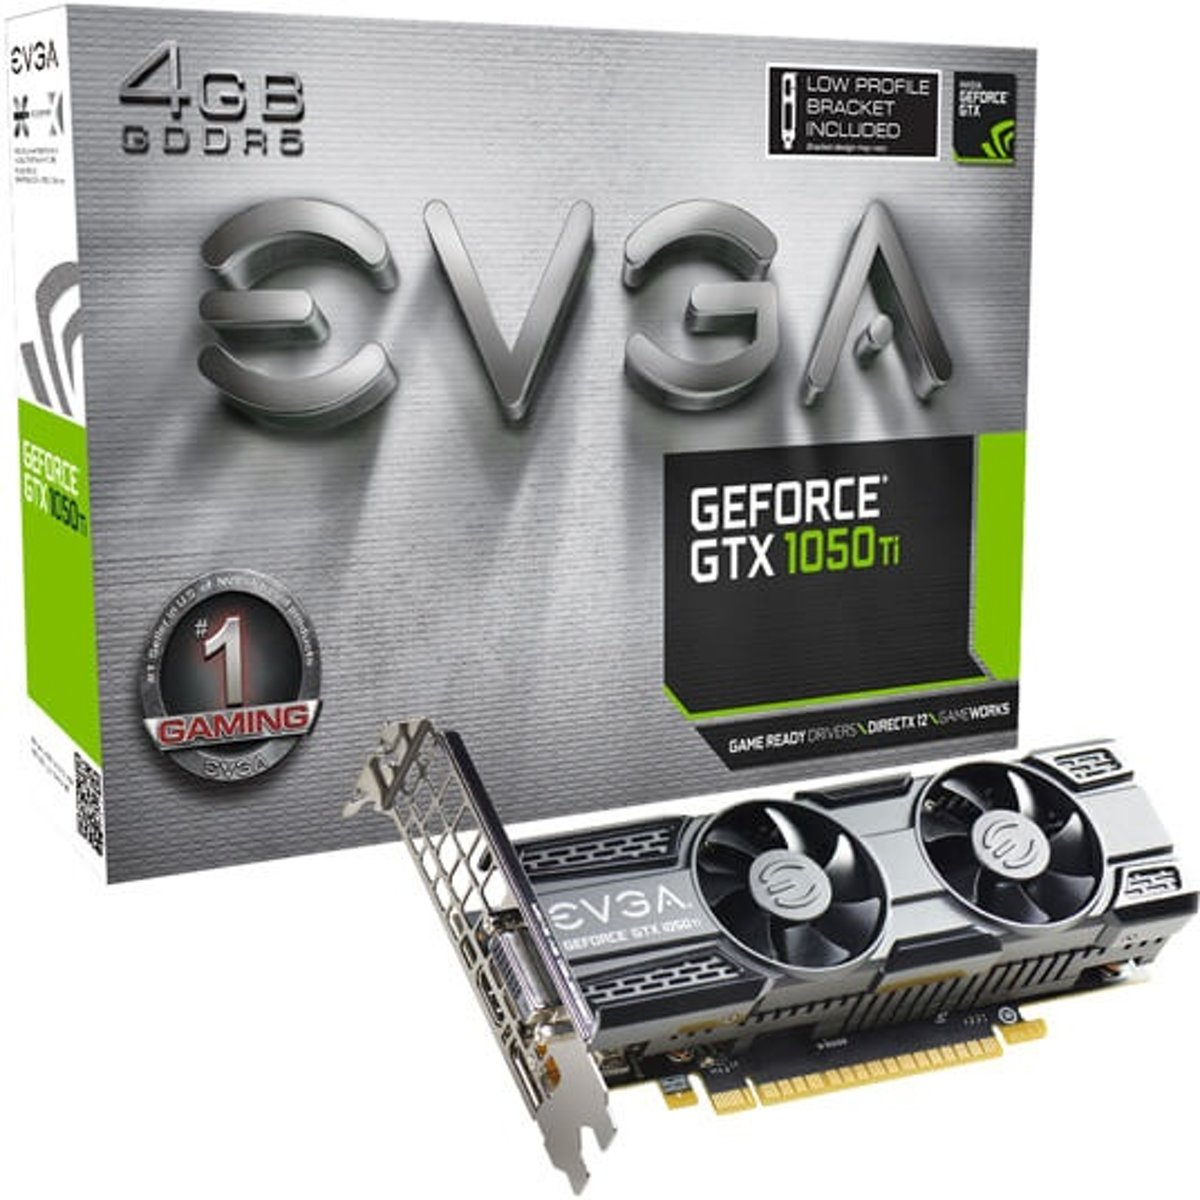 GeForce GTX 1050 Ti GAMING